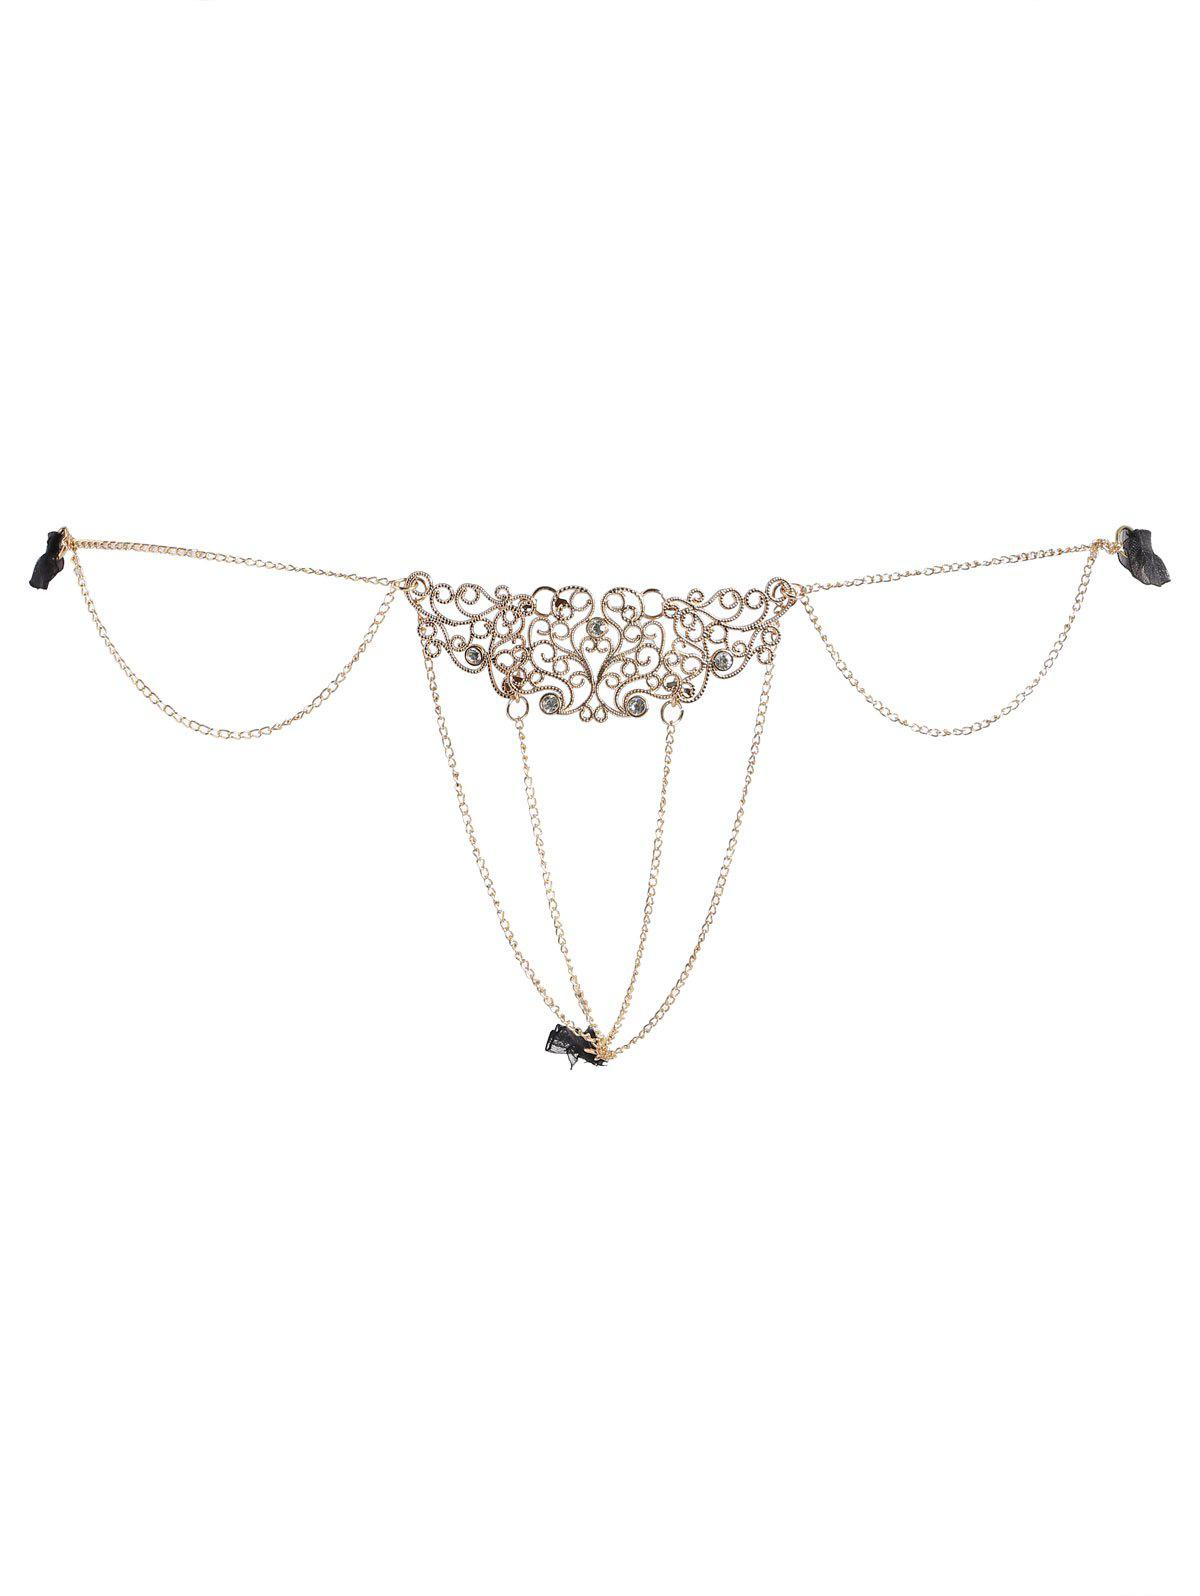 Chains Rhinestone Lingerie G-string - BLACK ONE SIZE